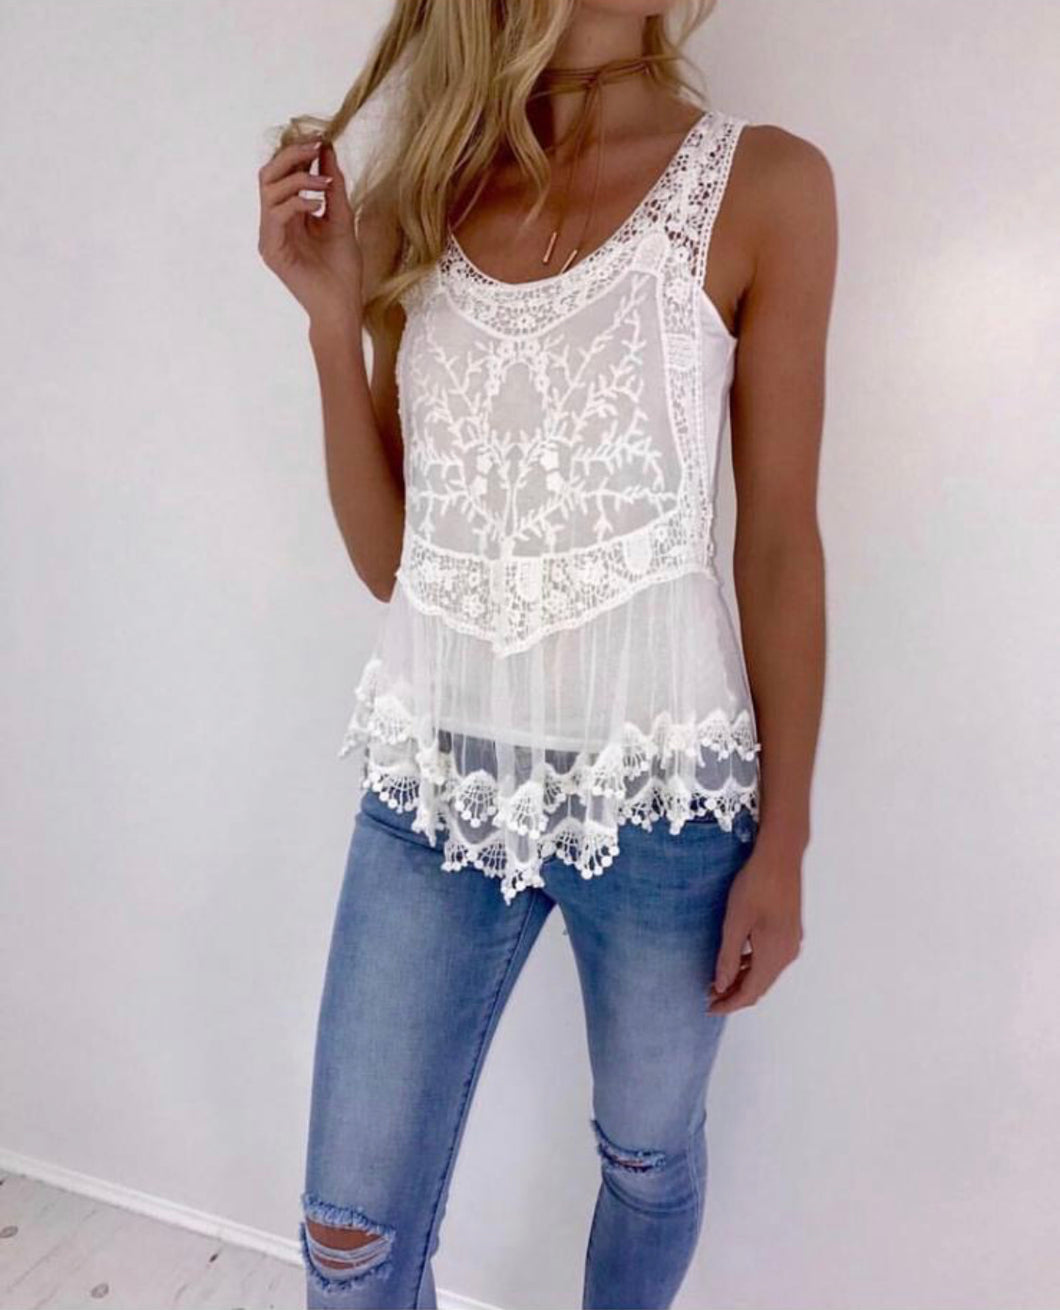 The Sienna Lace Top